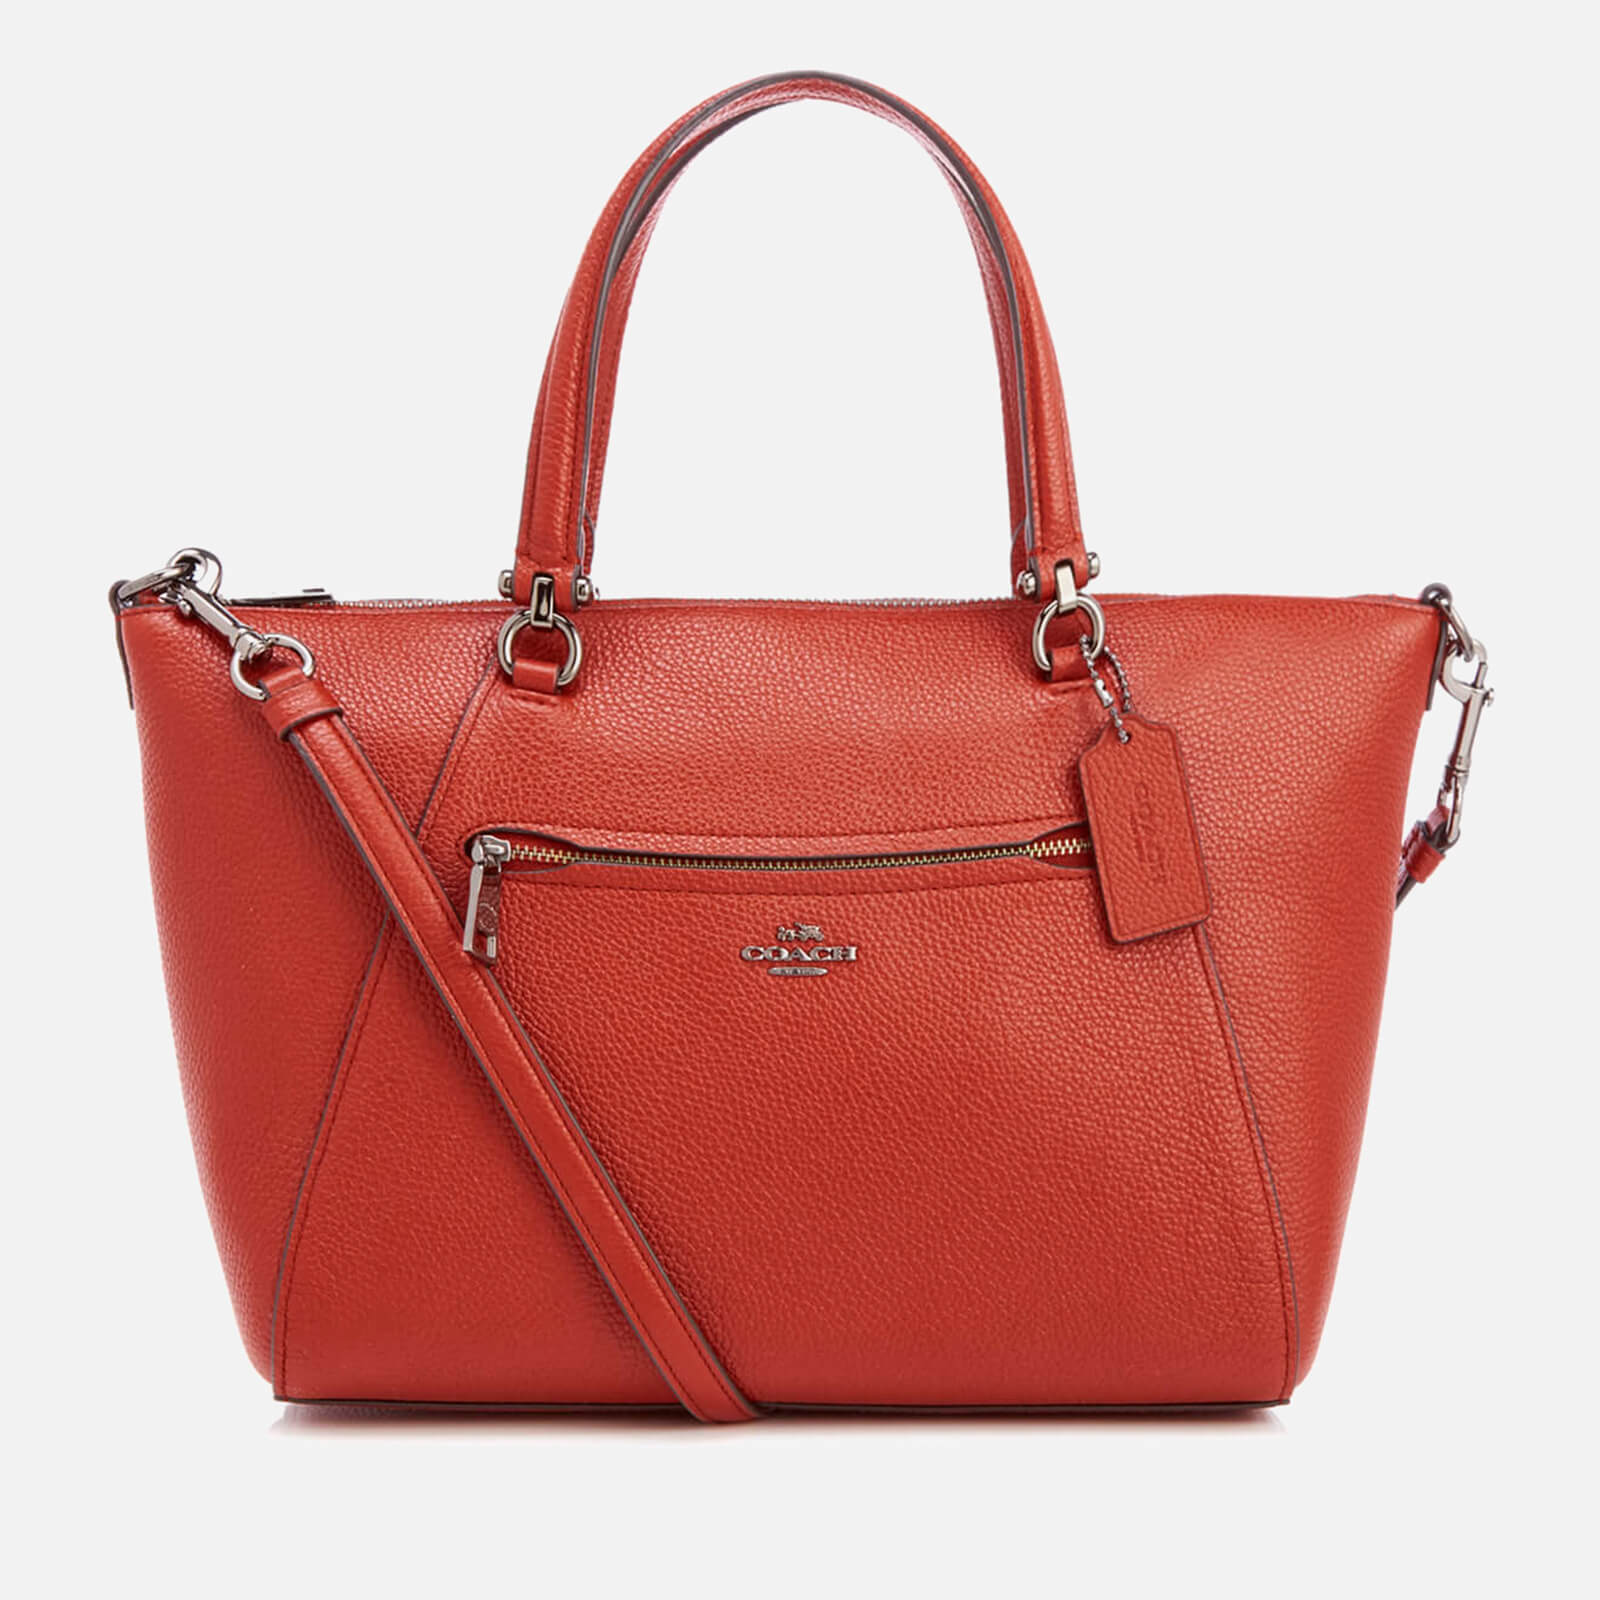 1bd67a5c0a6c Coach Women s Prairie Satchel - Terracotta - Free UK Delivery over £50